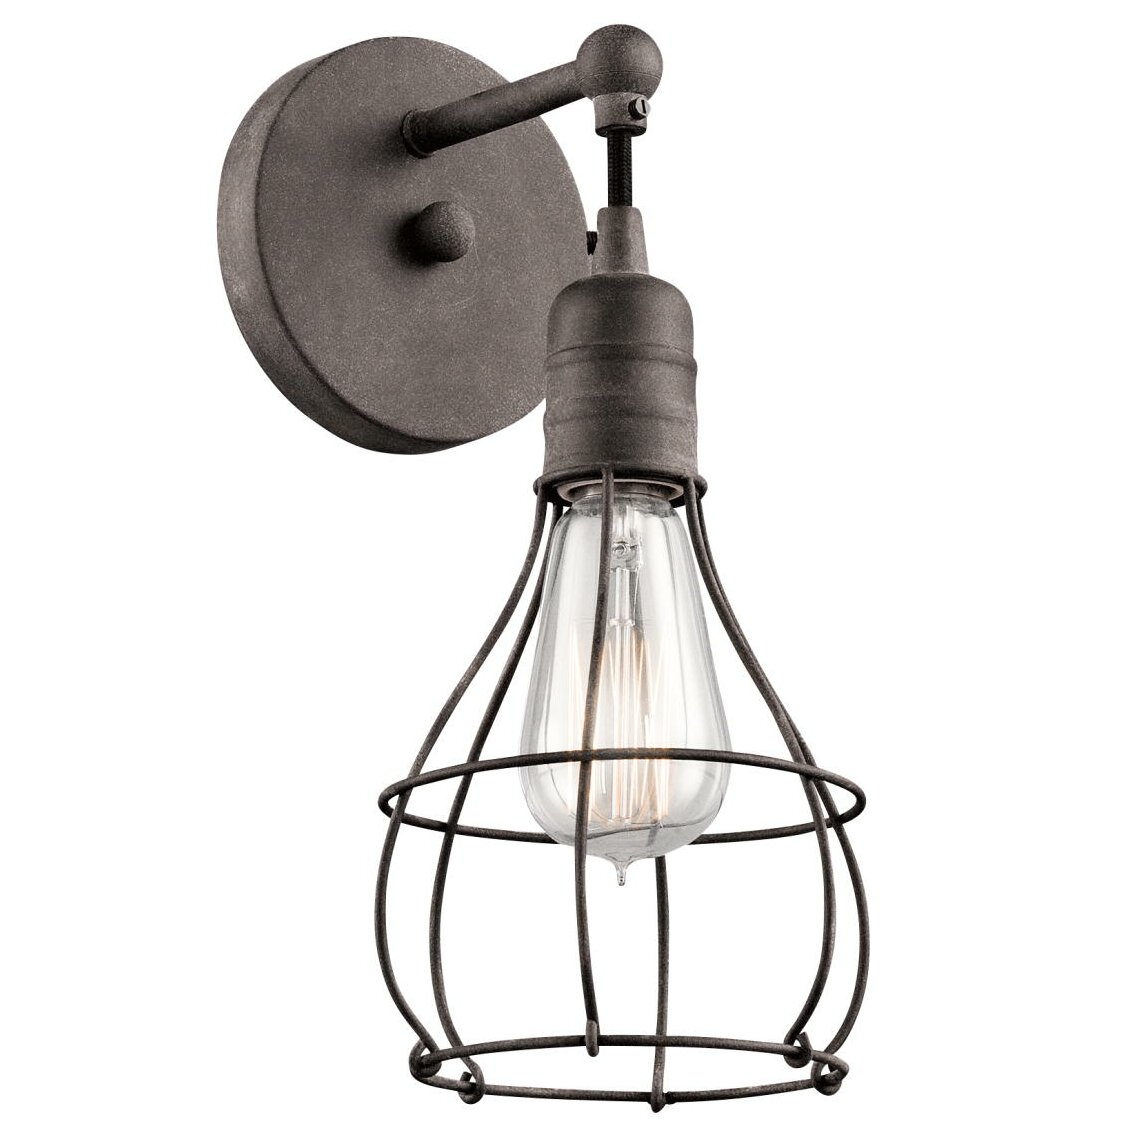 kichler industrial 1 light wall sconce reviews wayfair